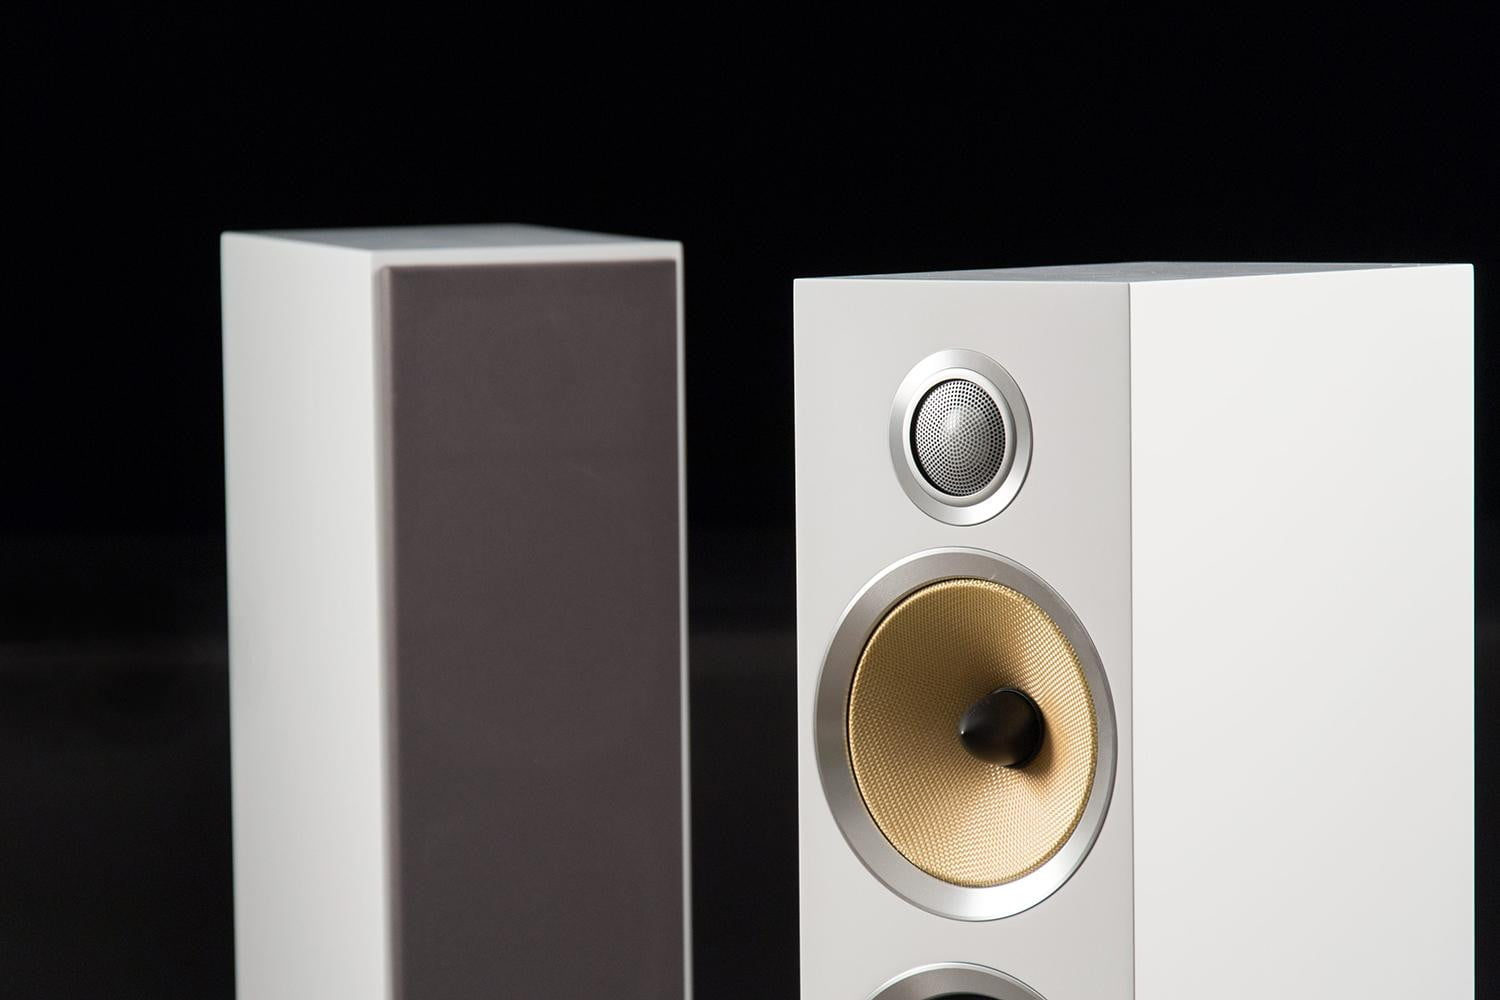 bowers and wilkins cm8 s2 review dressed to impress and. Black Bedroom Furniture Sets. Home Design Ideas